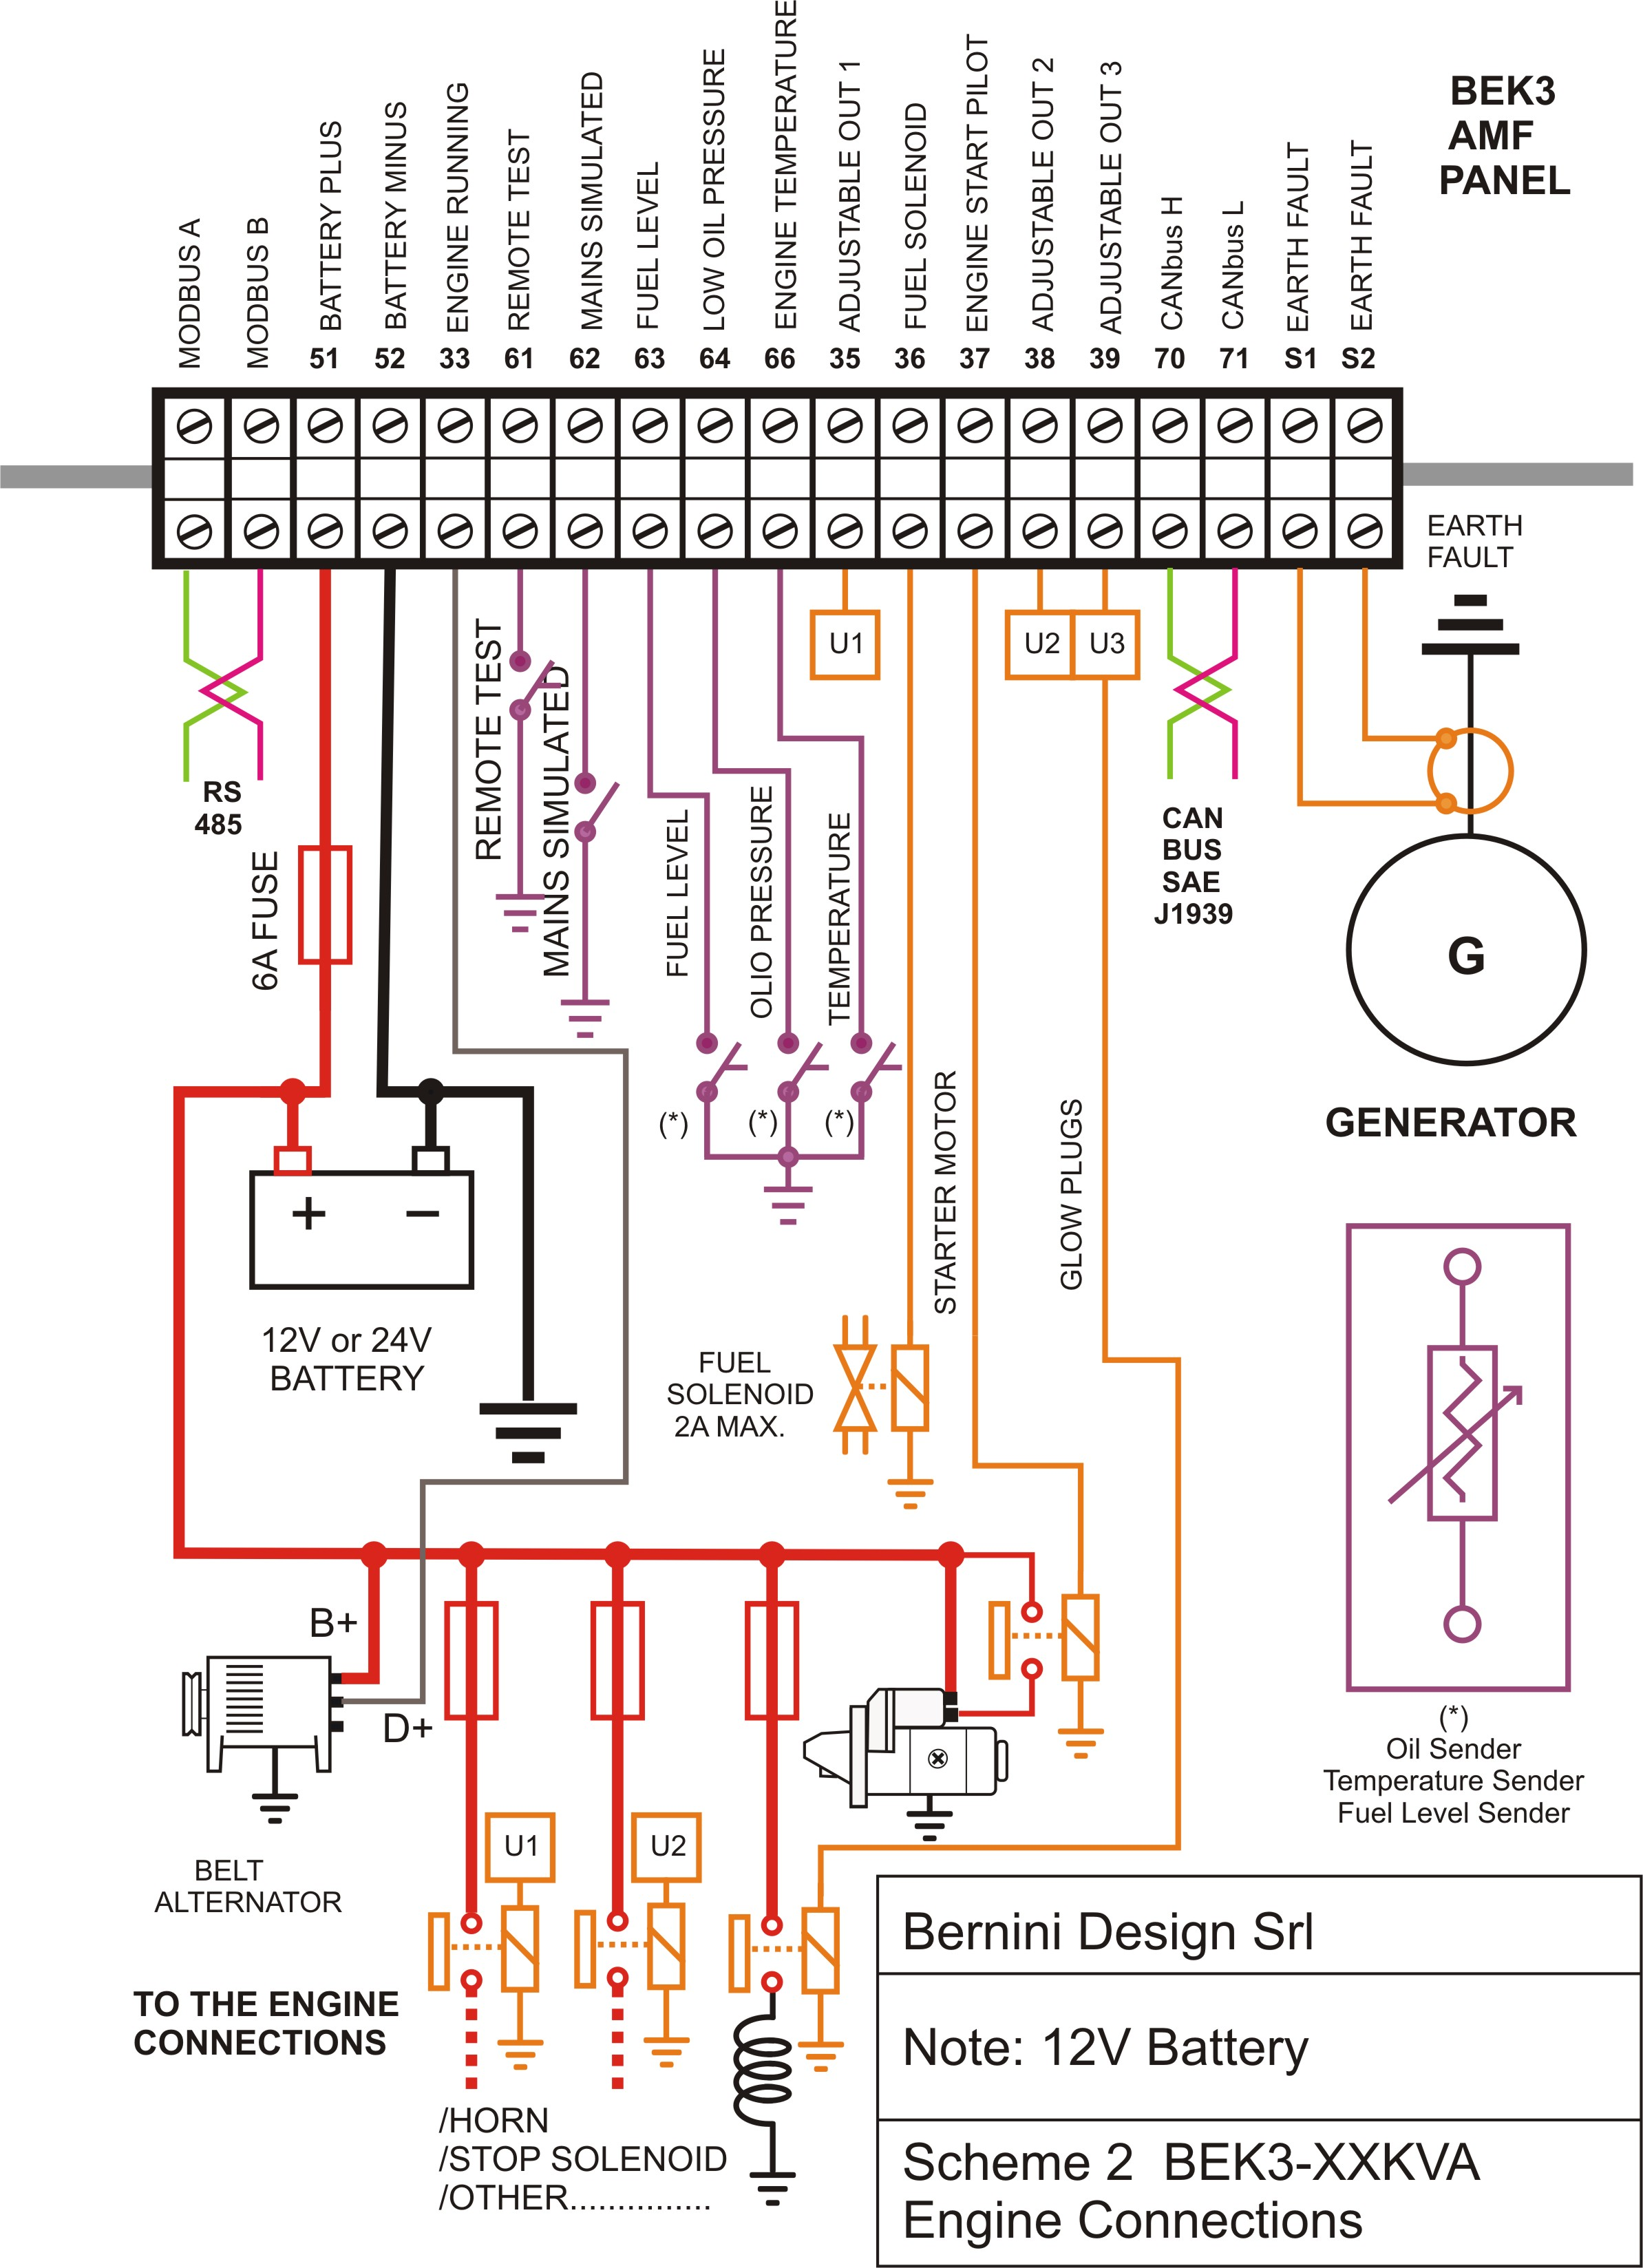 Diesel Generator Control Panel Wiring Diagram Engine Connections wiring diagram generator readingrat net wiring diagram tool at soozxer.org